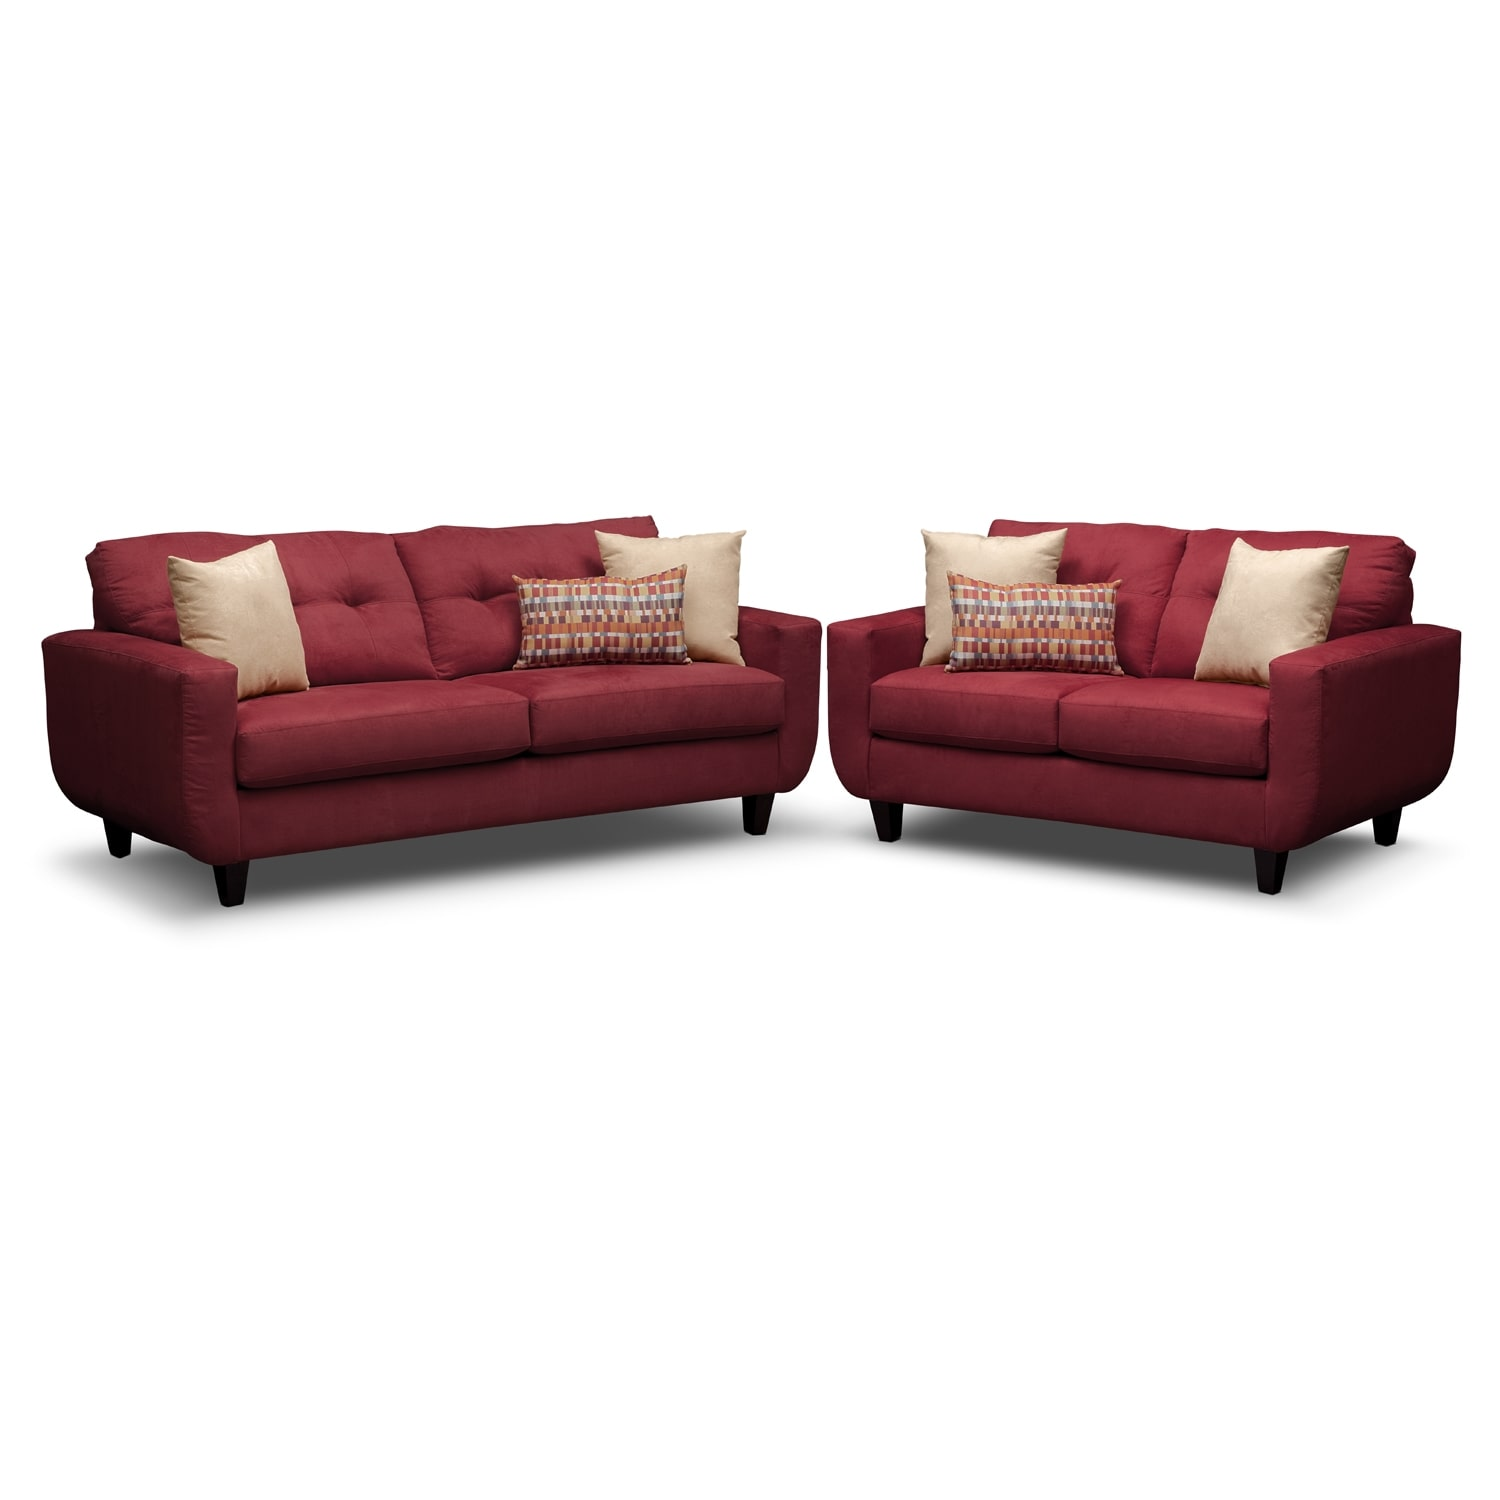 Living Room Furniture Sales: Shop Living Room Furniture Sale